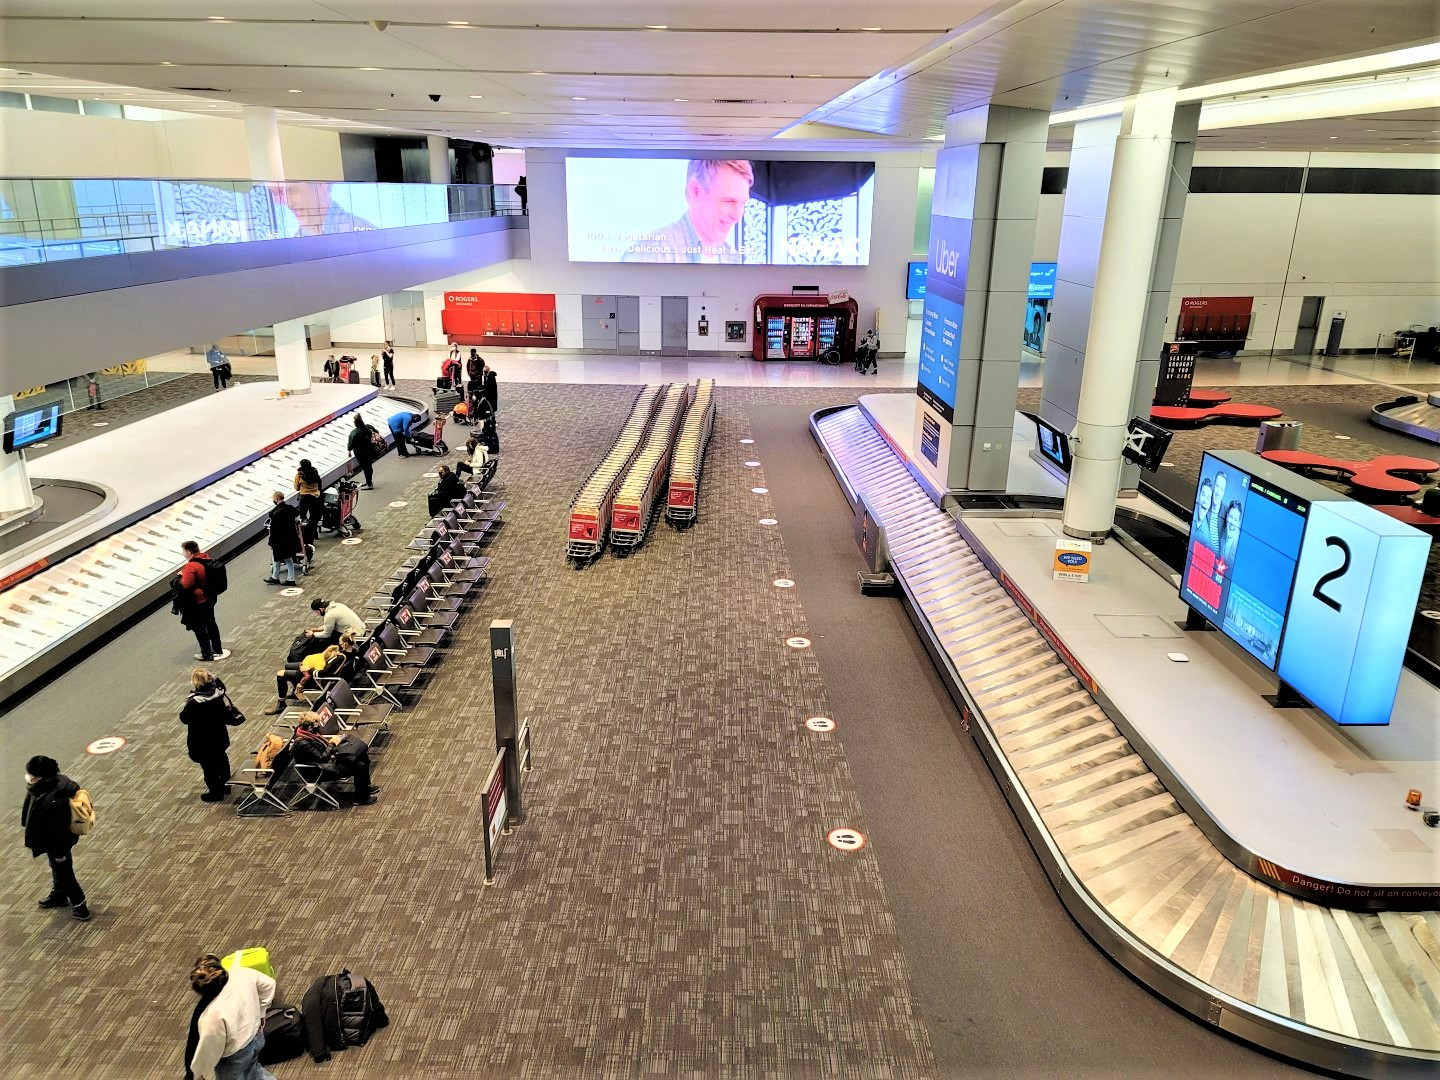 baggage carousel at Toronto pearson airport during COVID